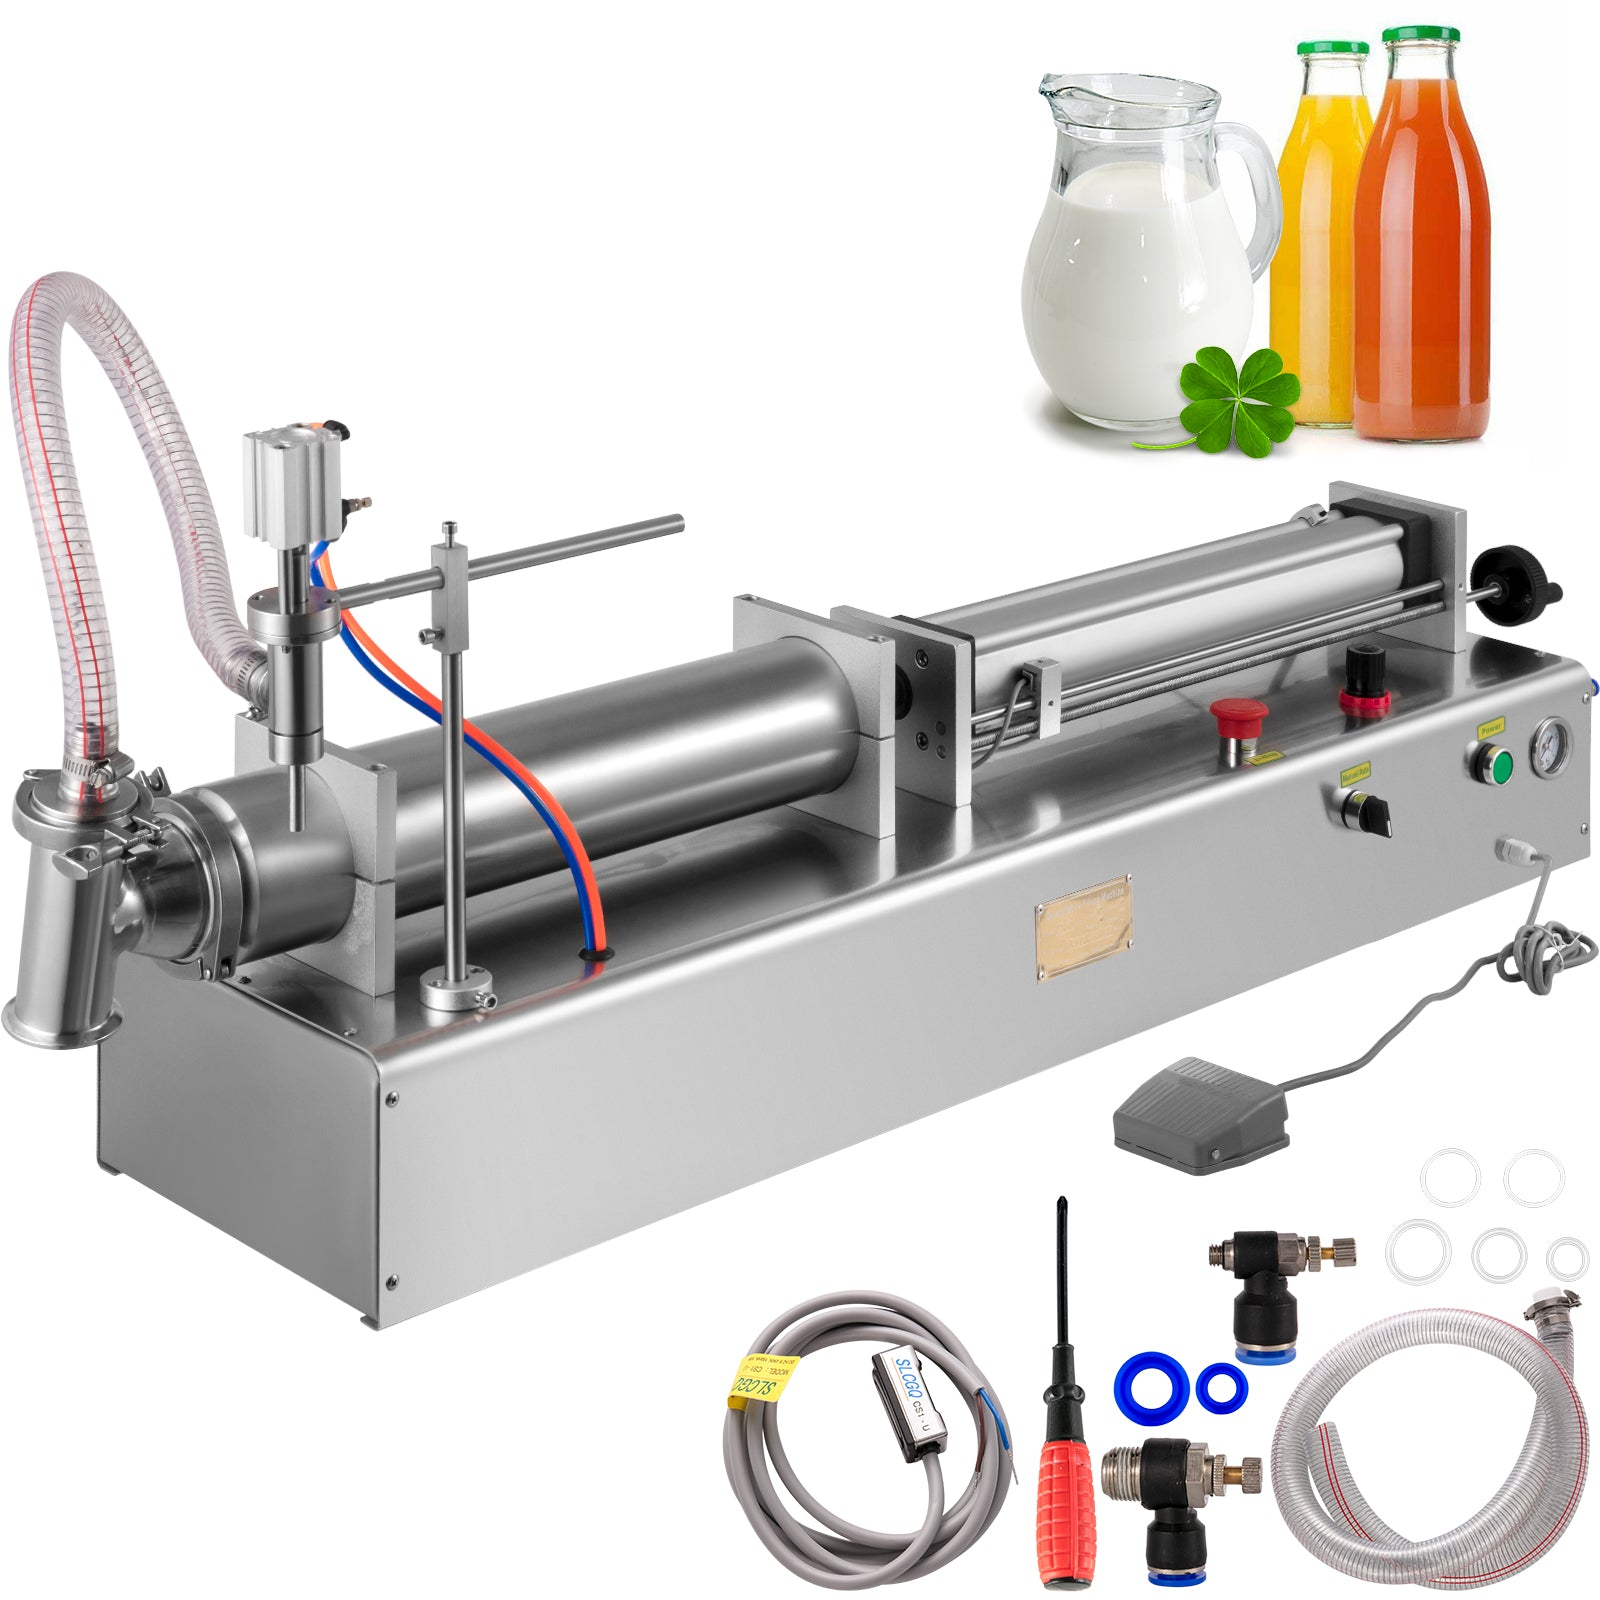 50-3000ml Pneumatic Liquid Filling Machine For Water / Perfume / Shampoo / Oil